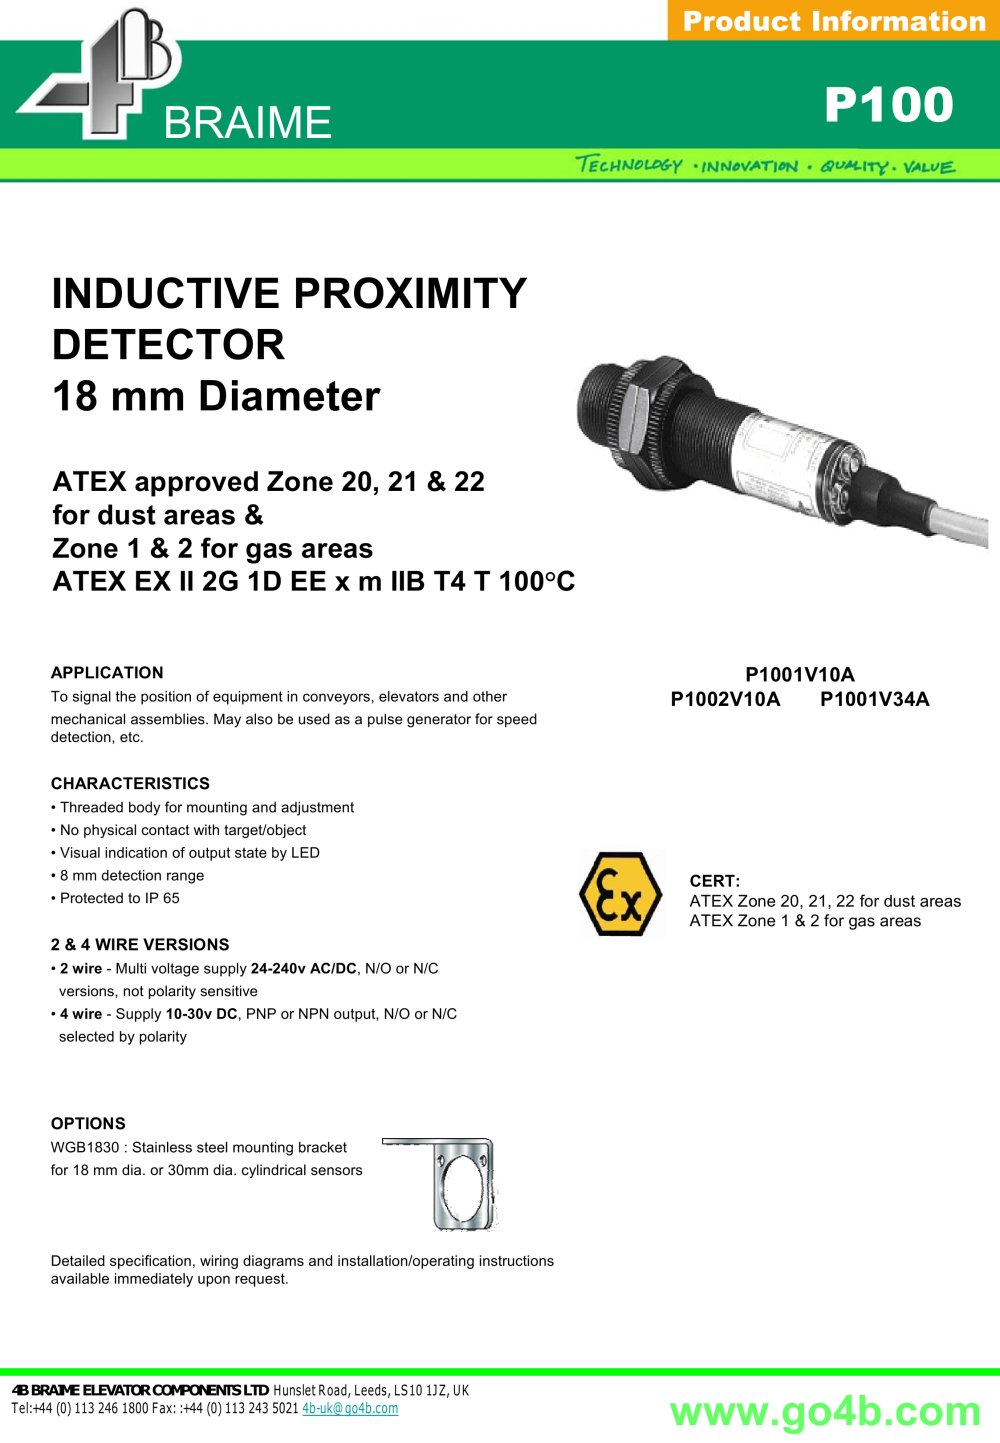 P100 Inductive Proximity Sensor 18mm 4b Braime Ponents Pdf. P100 Inductive Proximity Sensor 18mm 1 2 Pages. Wiring. Proximity Sensor 2wire 24 Dc Wiring At Scoala.co